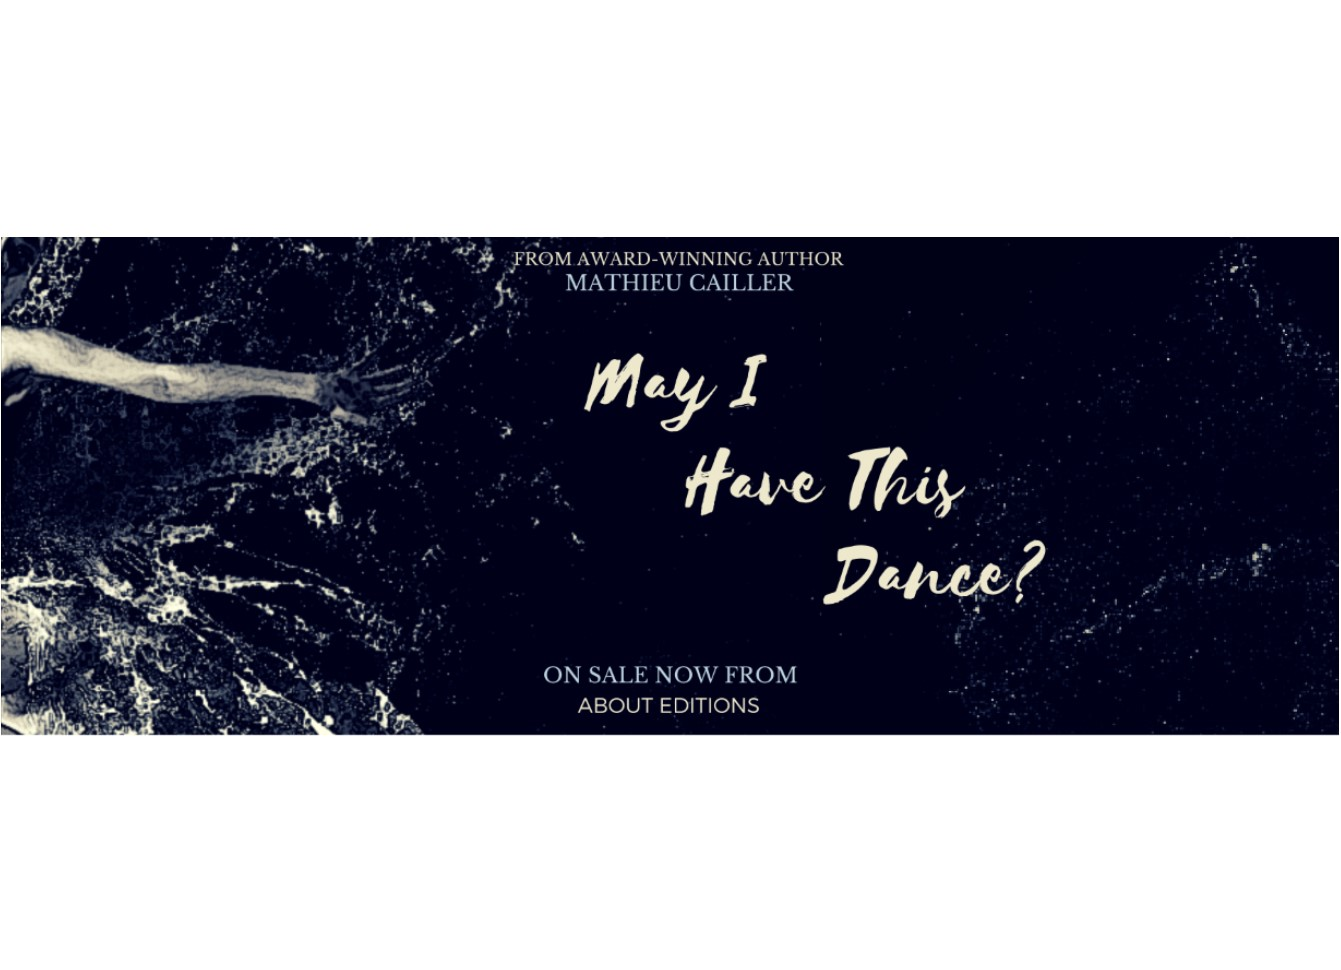 May I Have This Dance Release